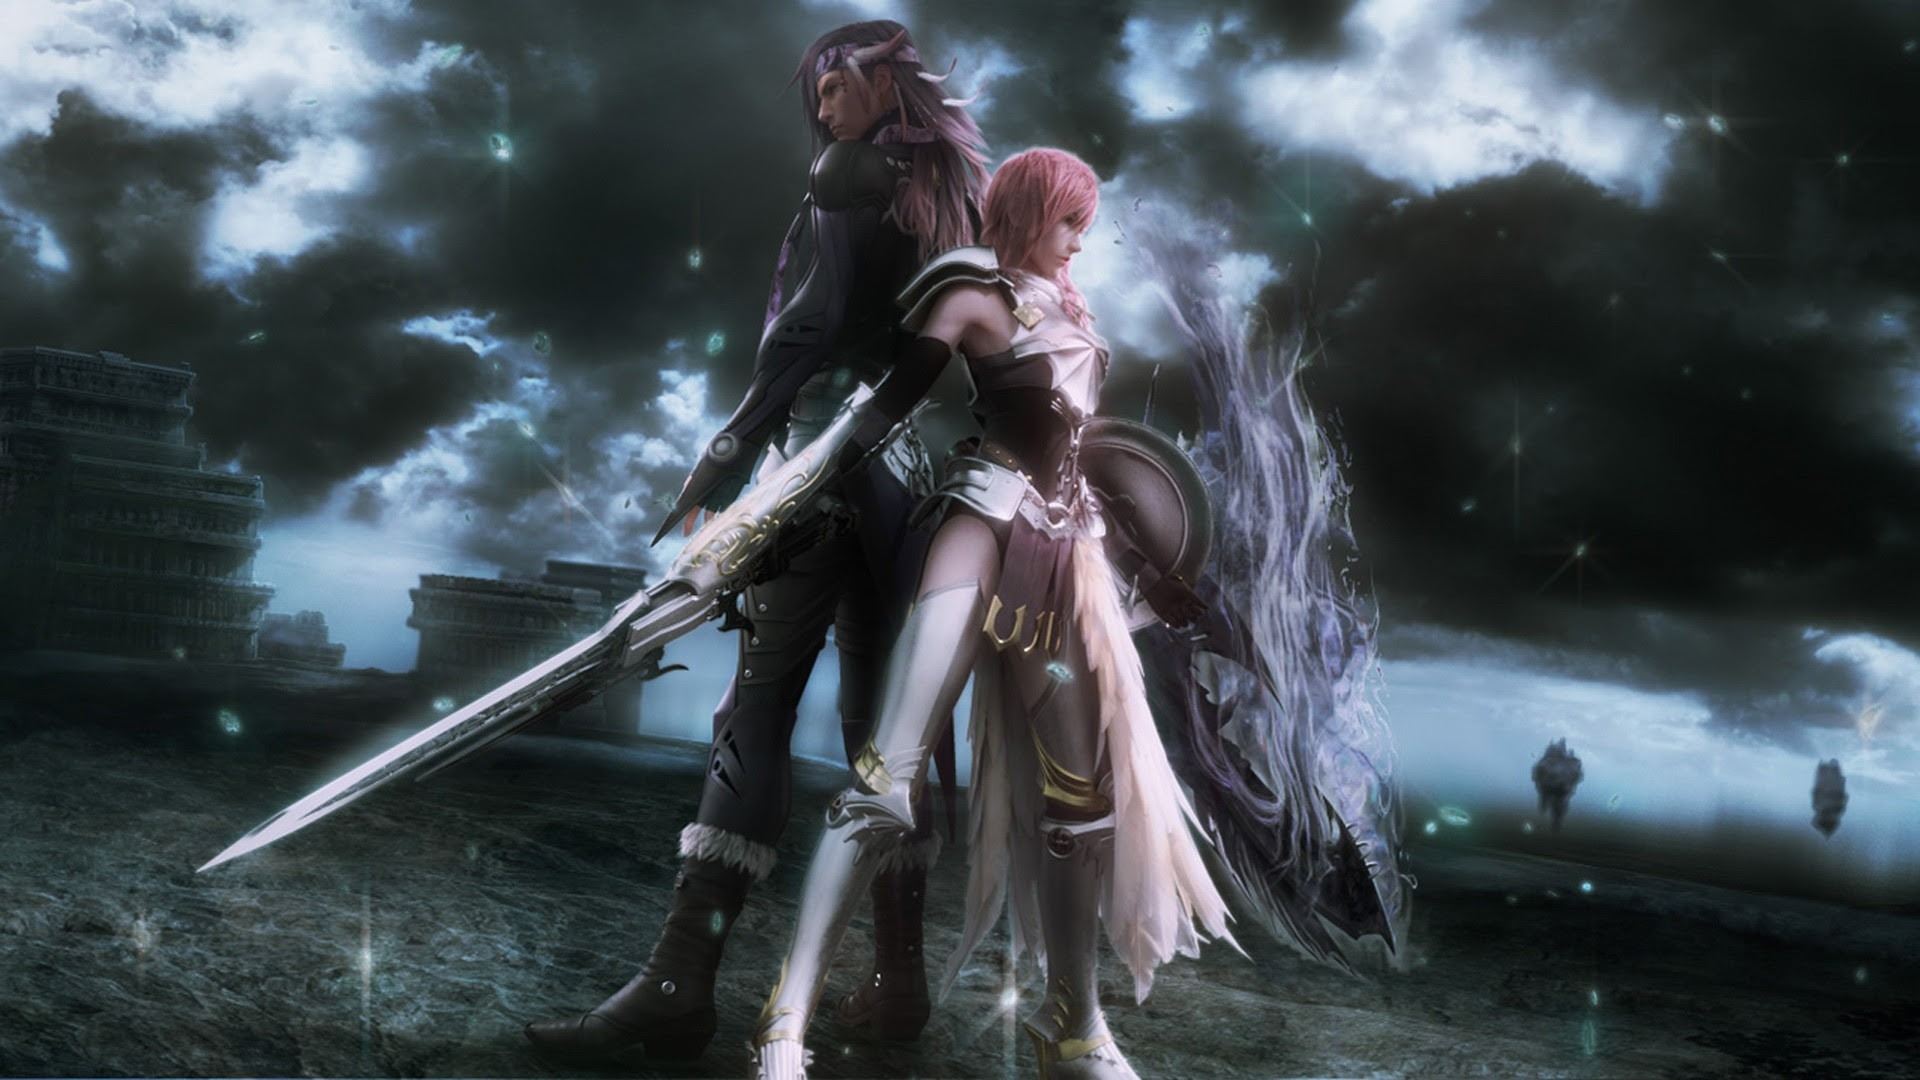 Final Fantasy Xiii 2 Wallpapers Free Downloads Inmotion Gaming